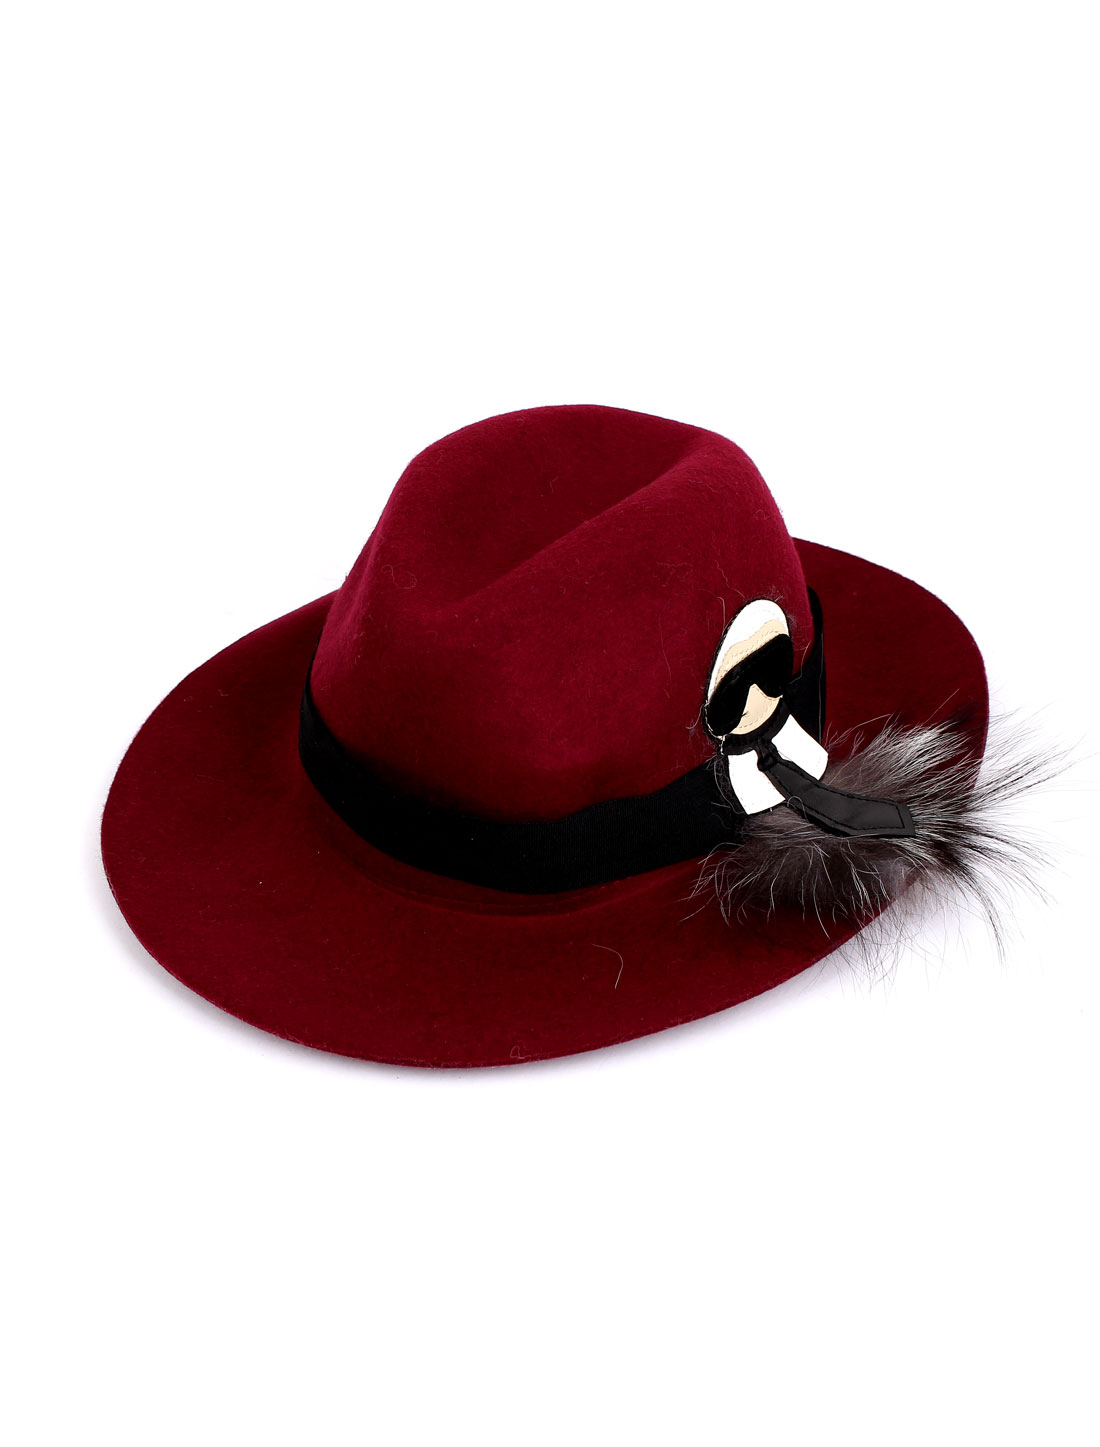 Lady Women Felt Wide Brim Wedding Party Warm Bowler Cloche Hat Cap Burgundy